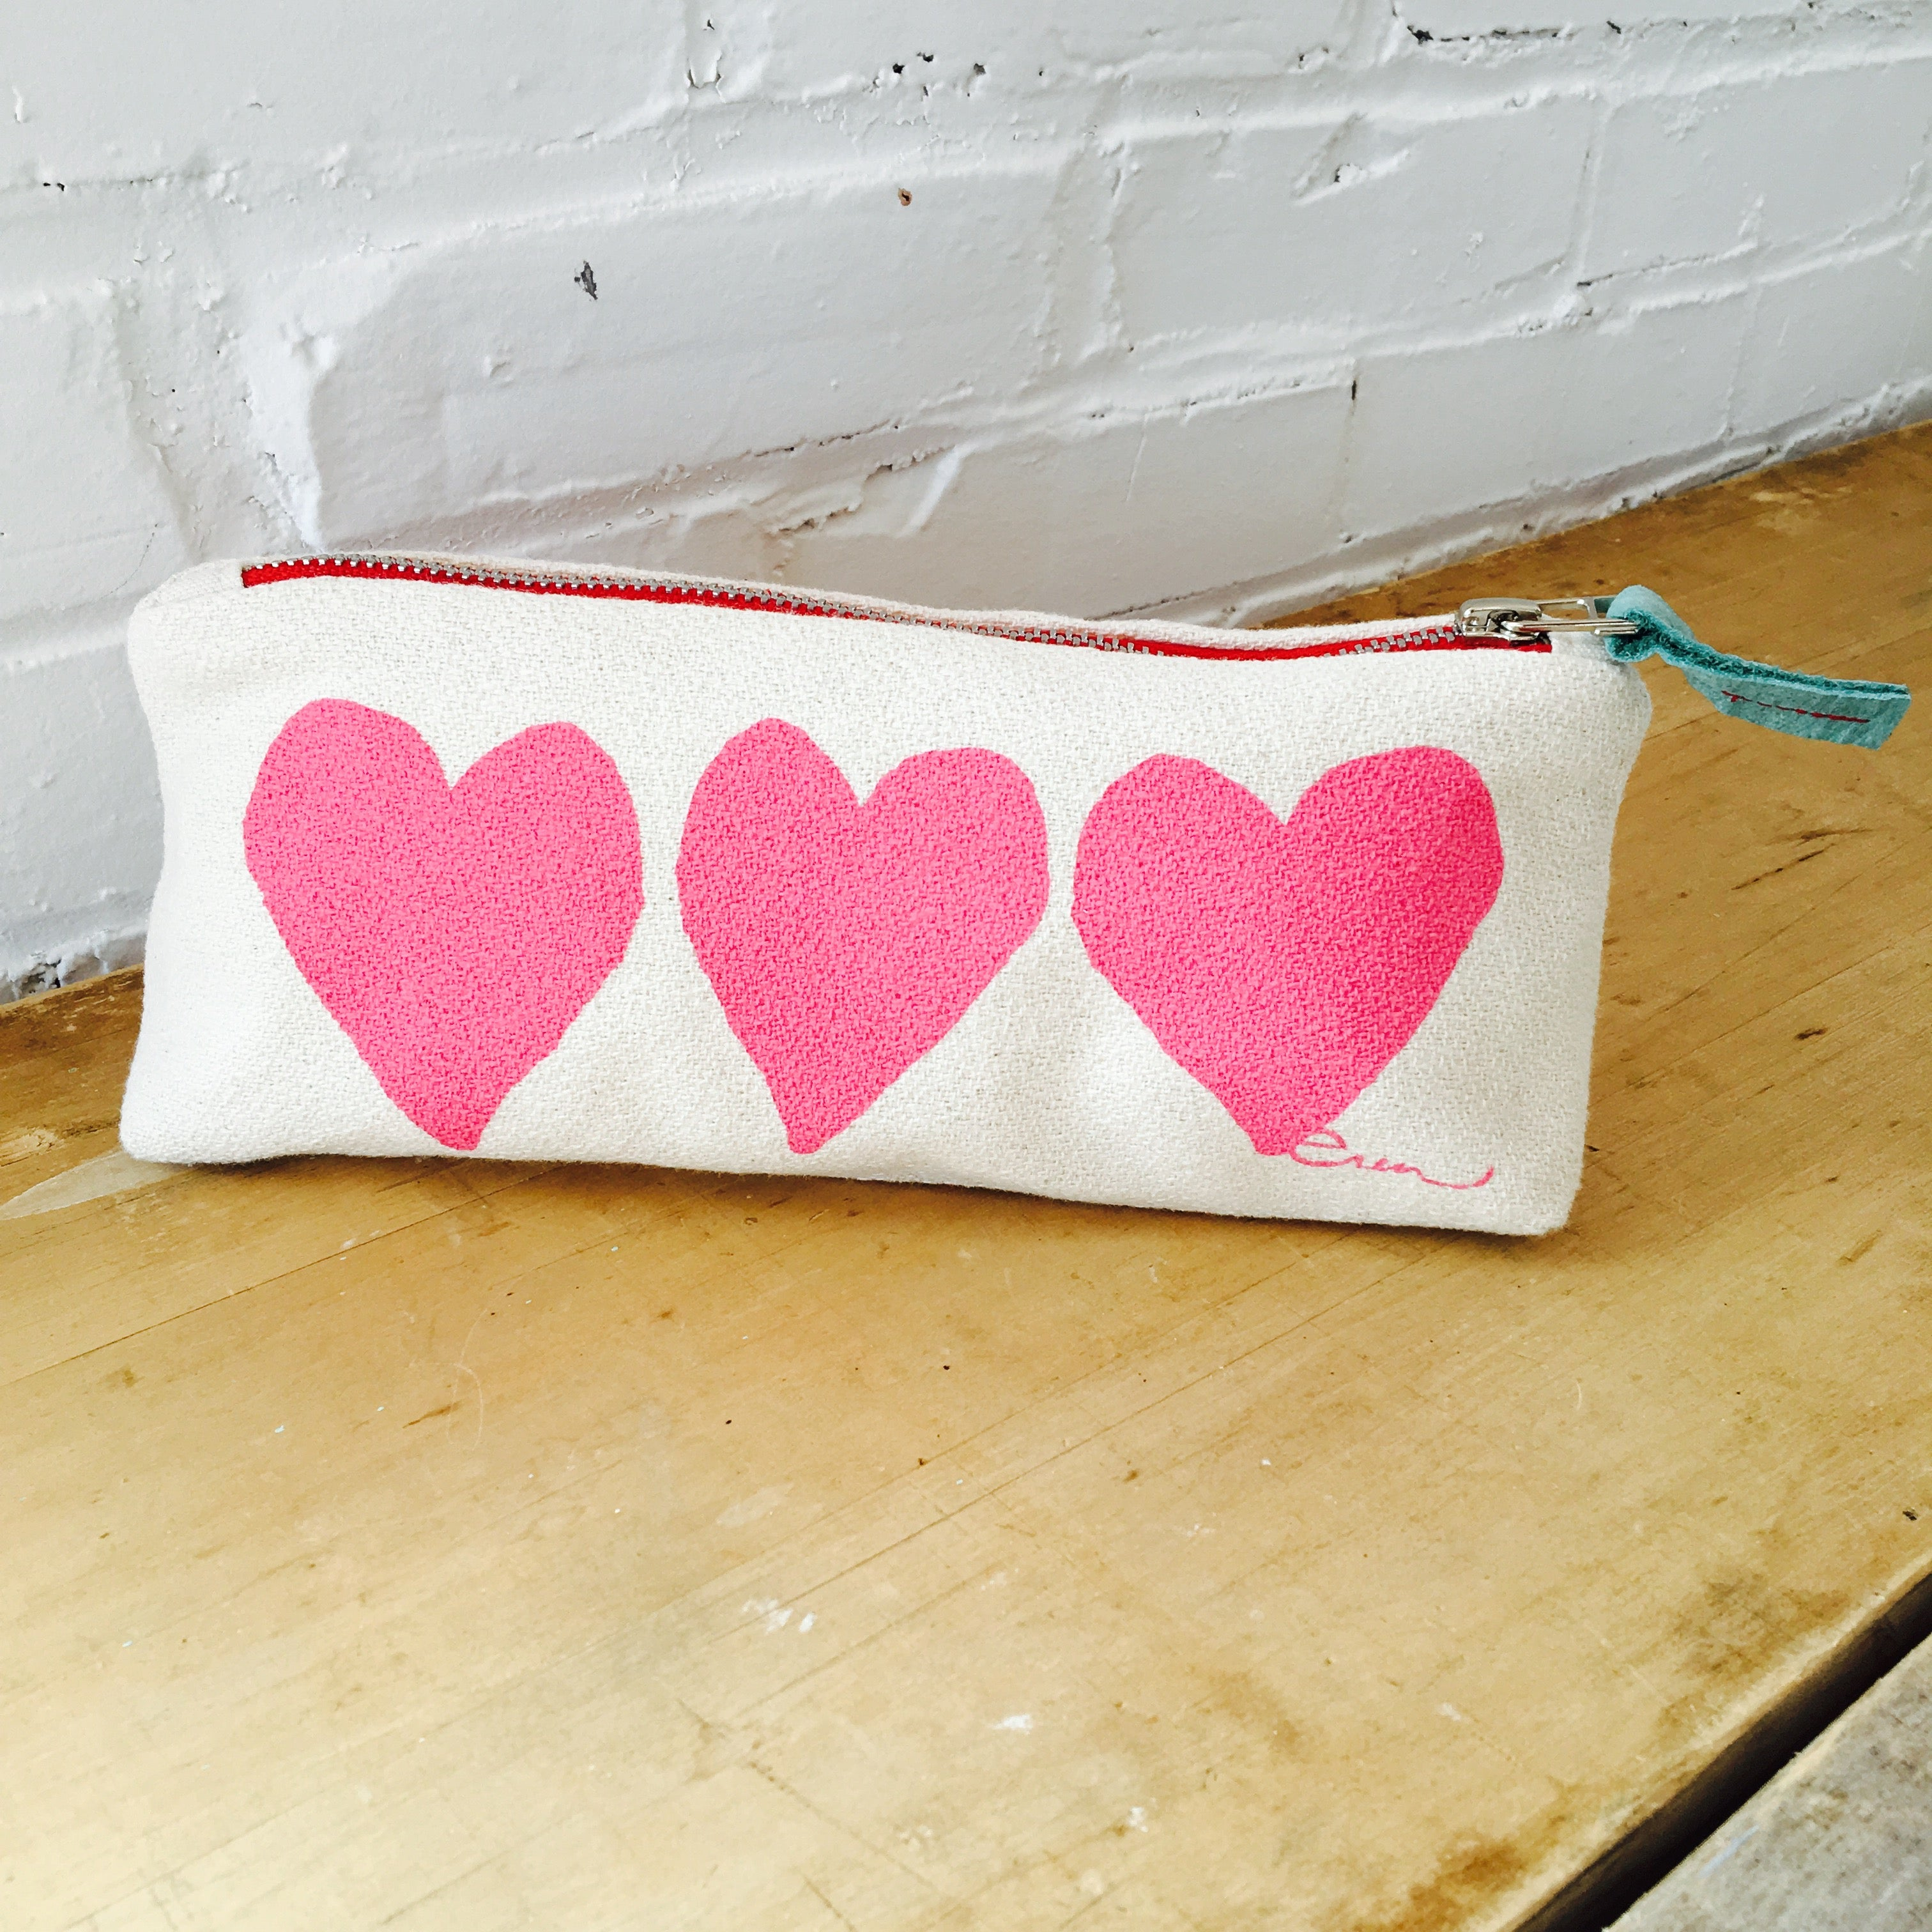 HOT PINK HEART ZIPPER BAG